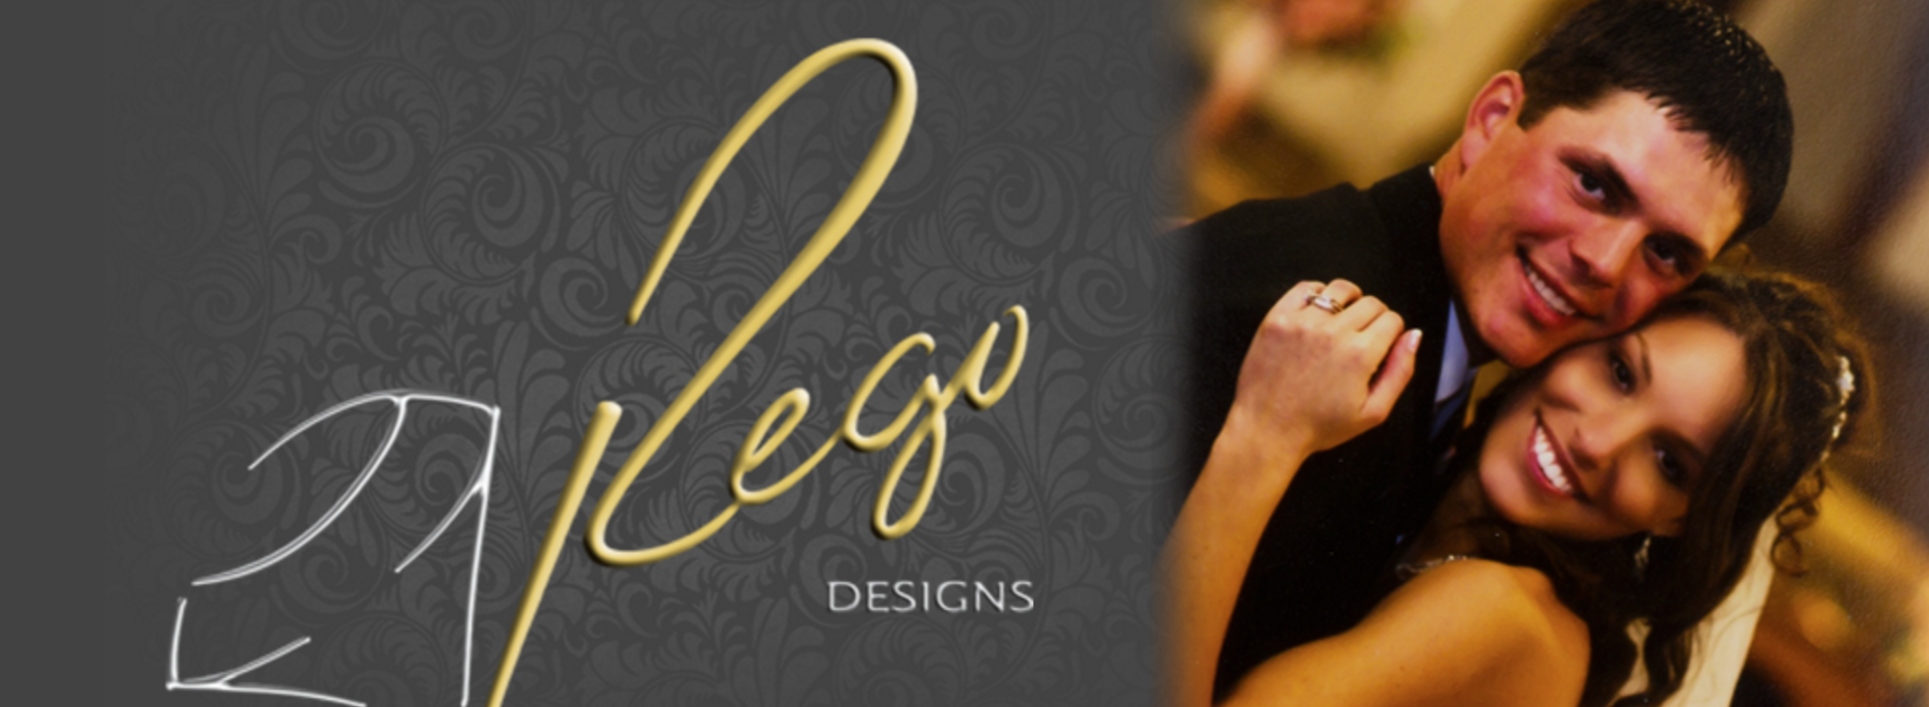 Corinth Jewelers Rego Designs